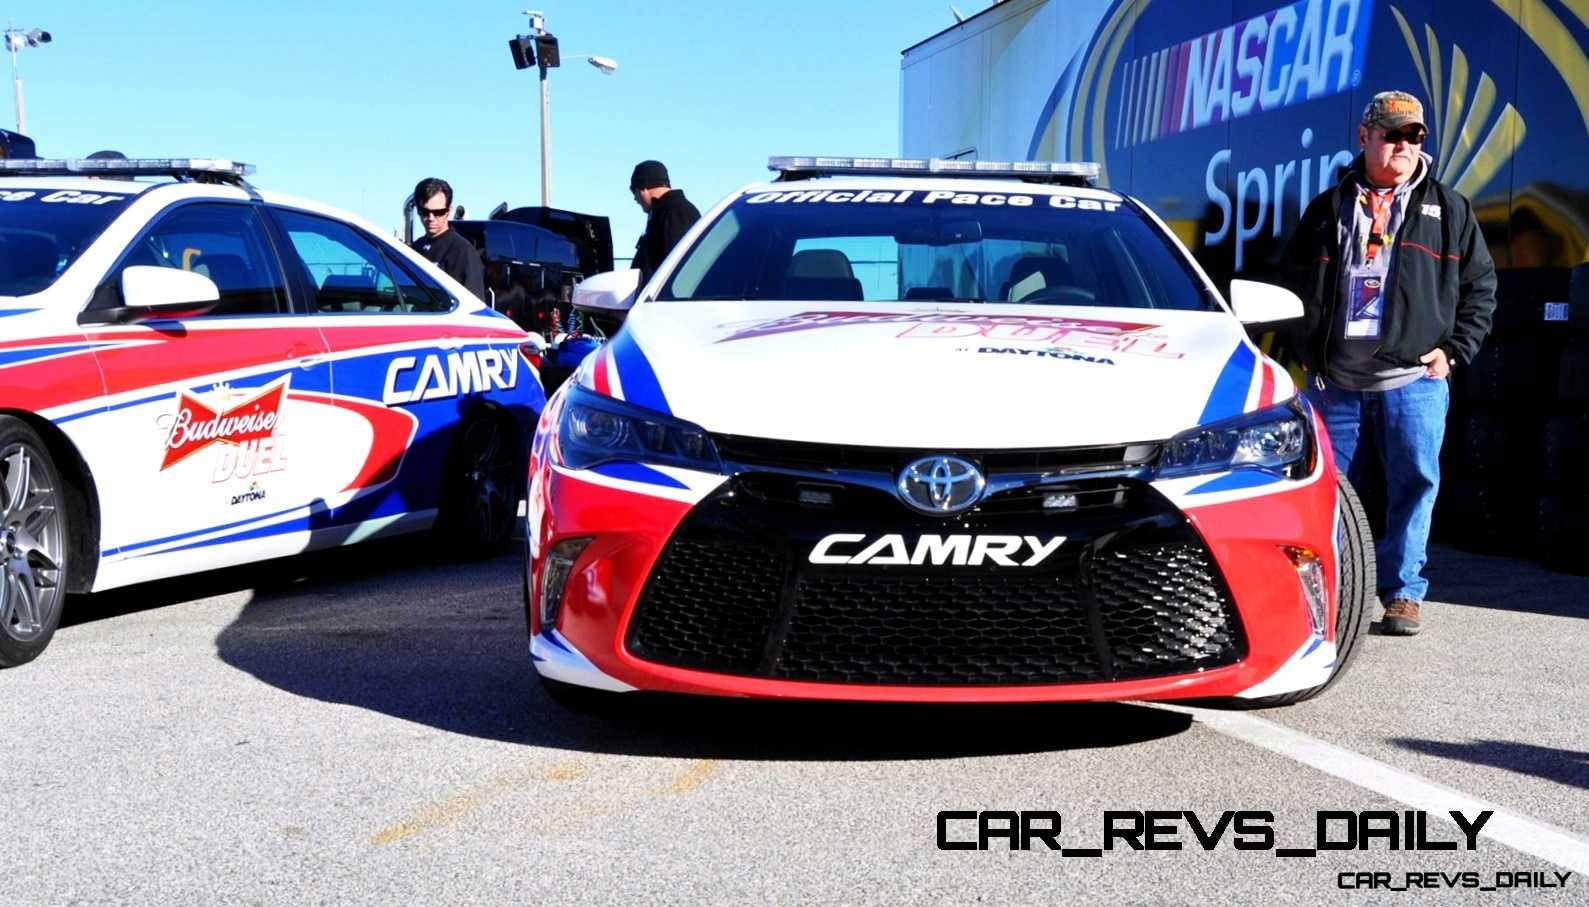 2015 Toyota Camry - DAYTONA 500 Official Pace Car 25